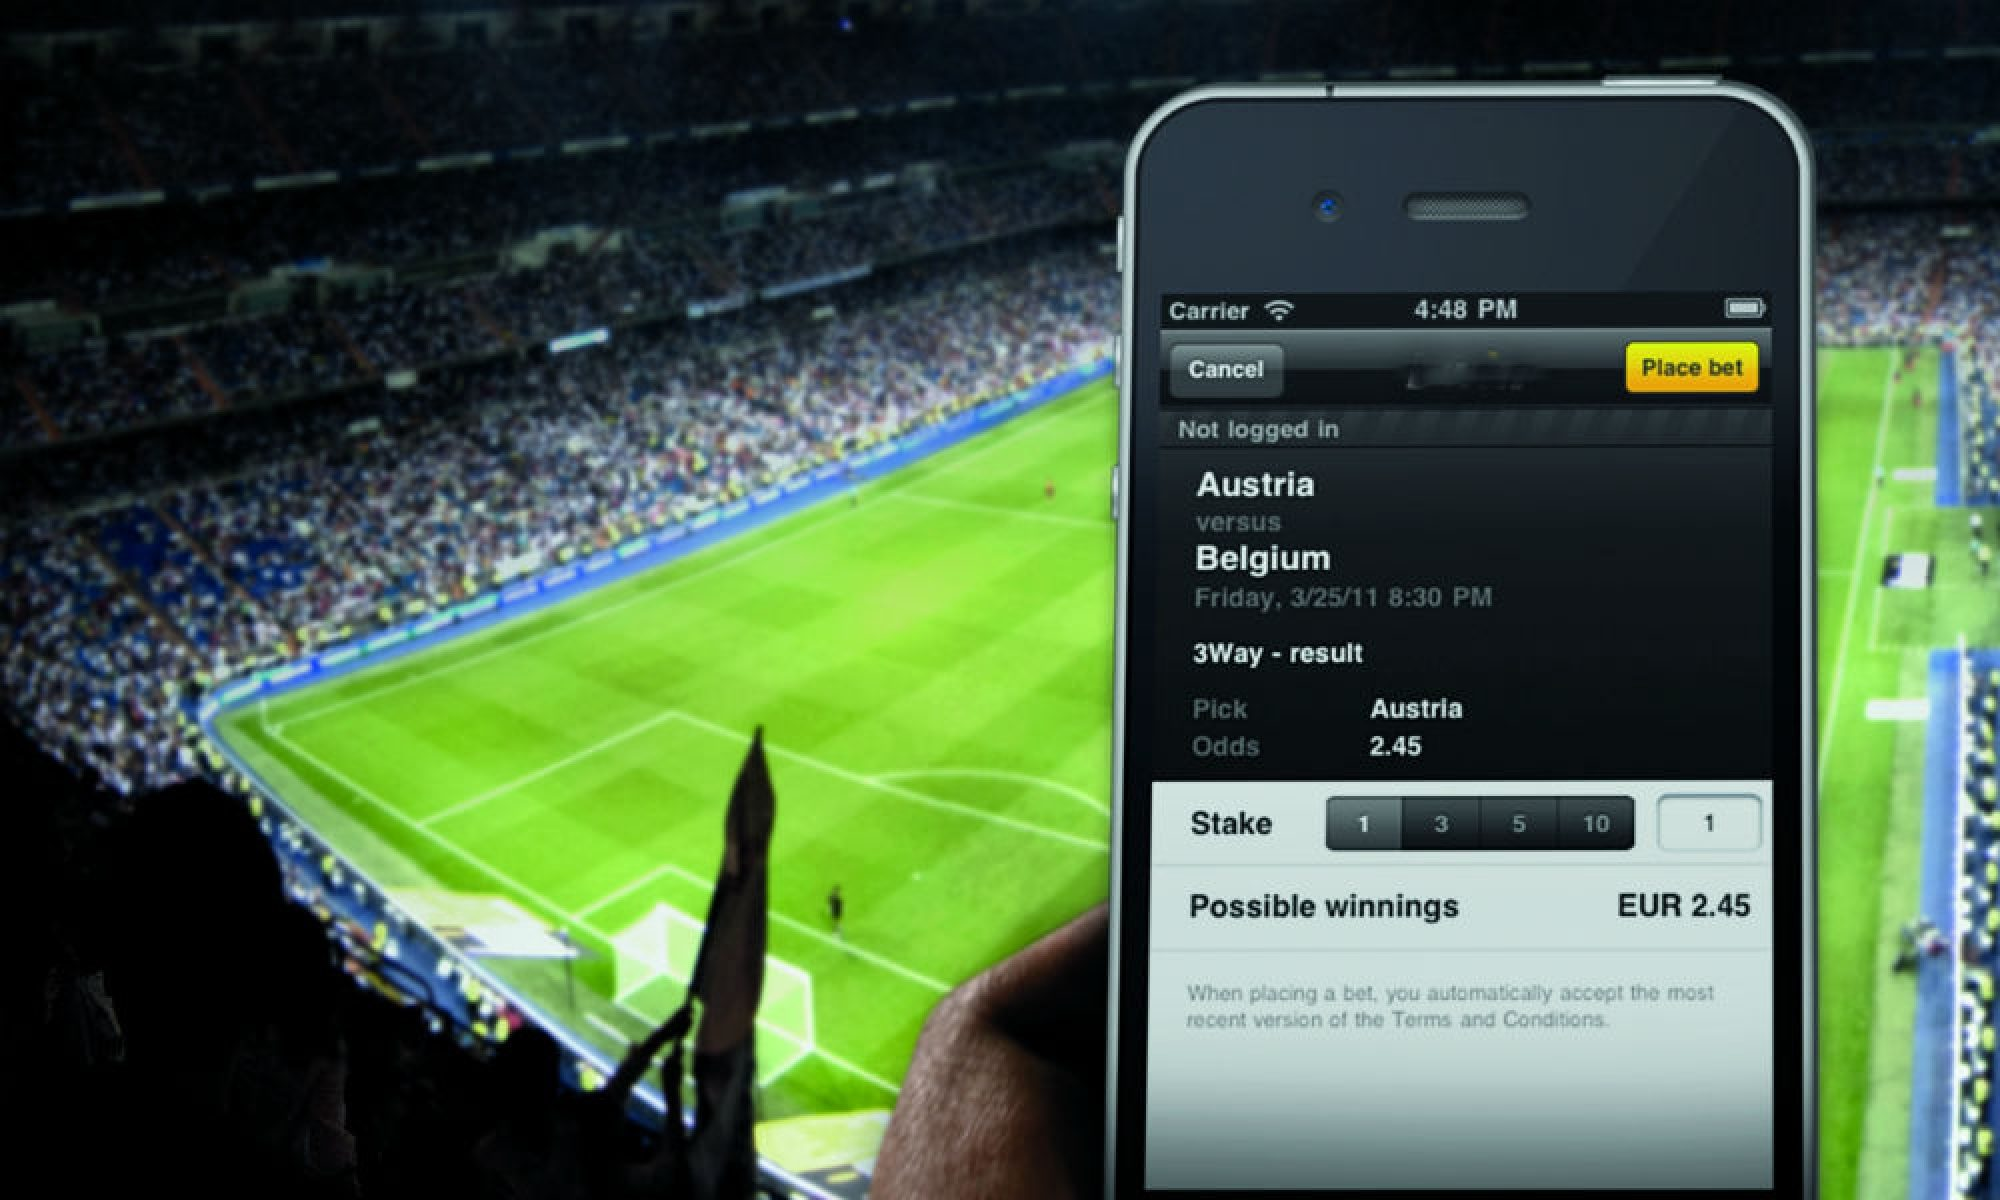 mobile-betting-1000x600-2000x1200-2-4825103